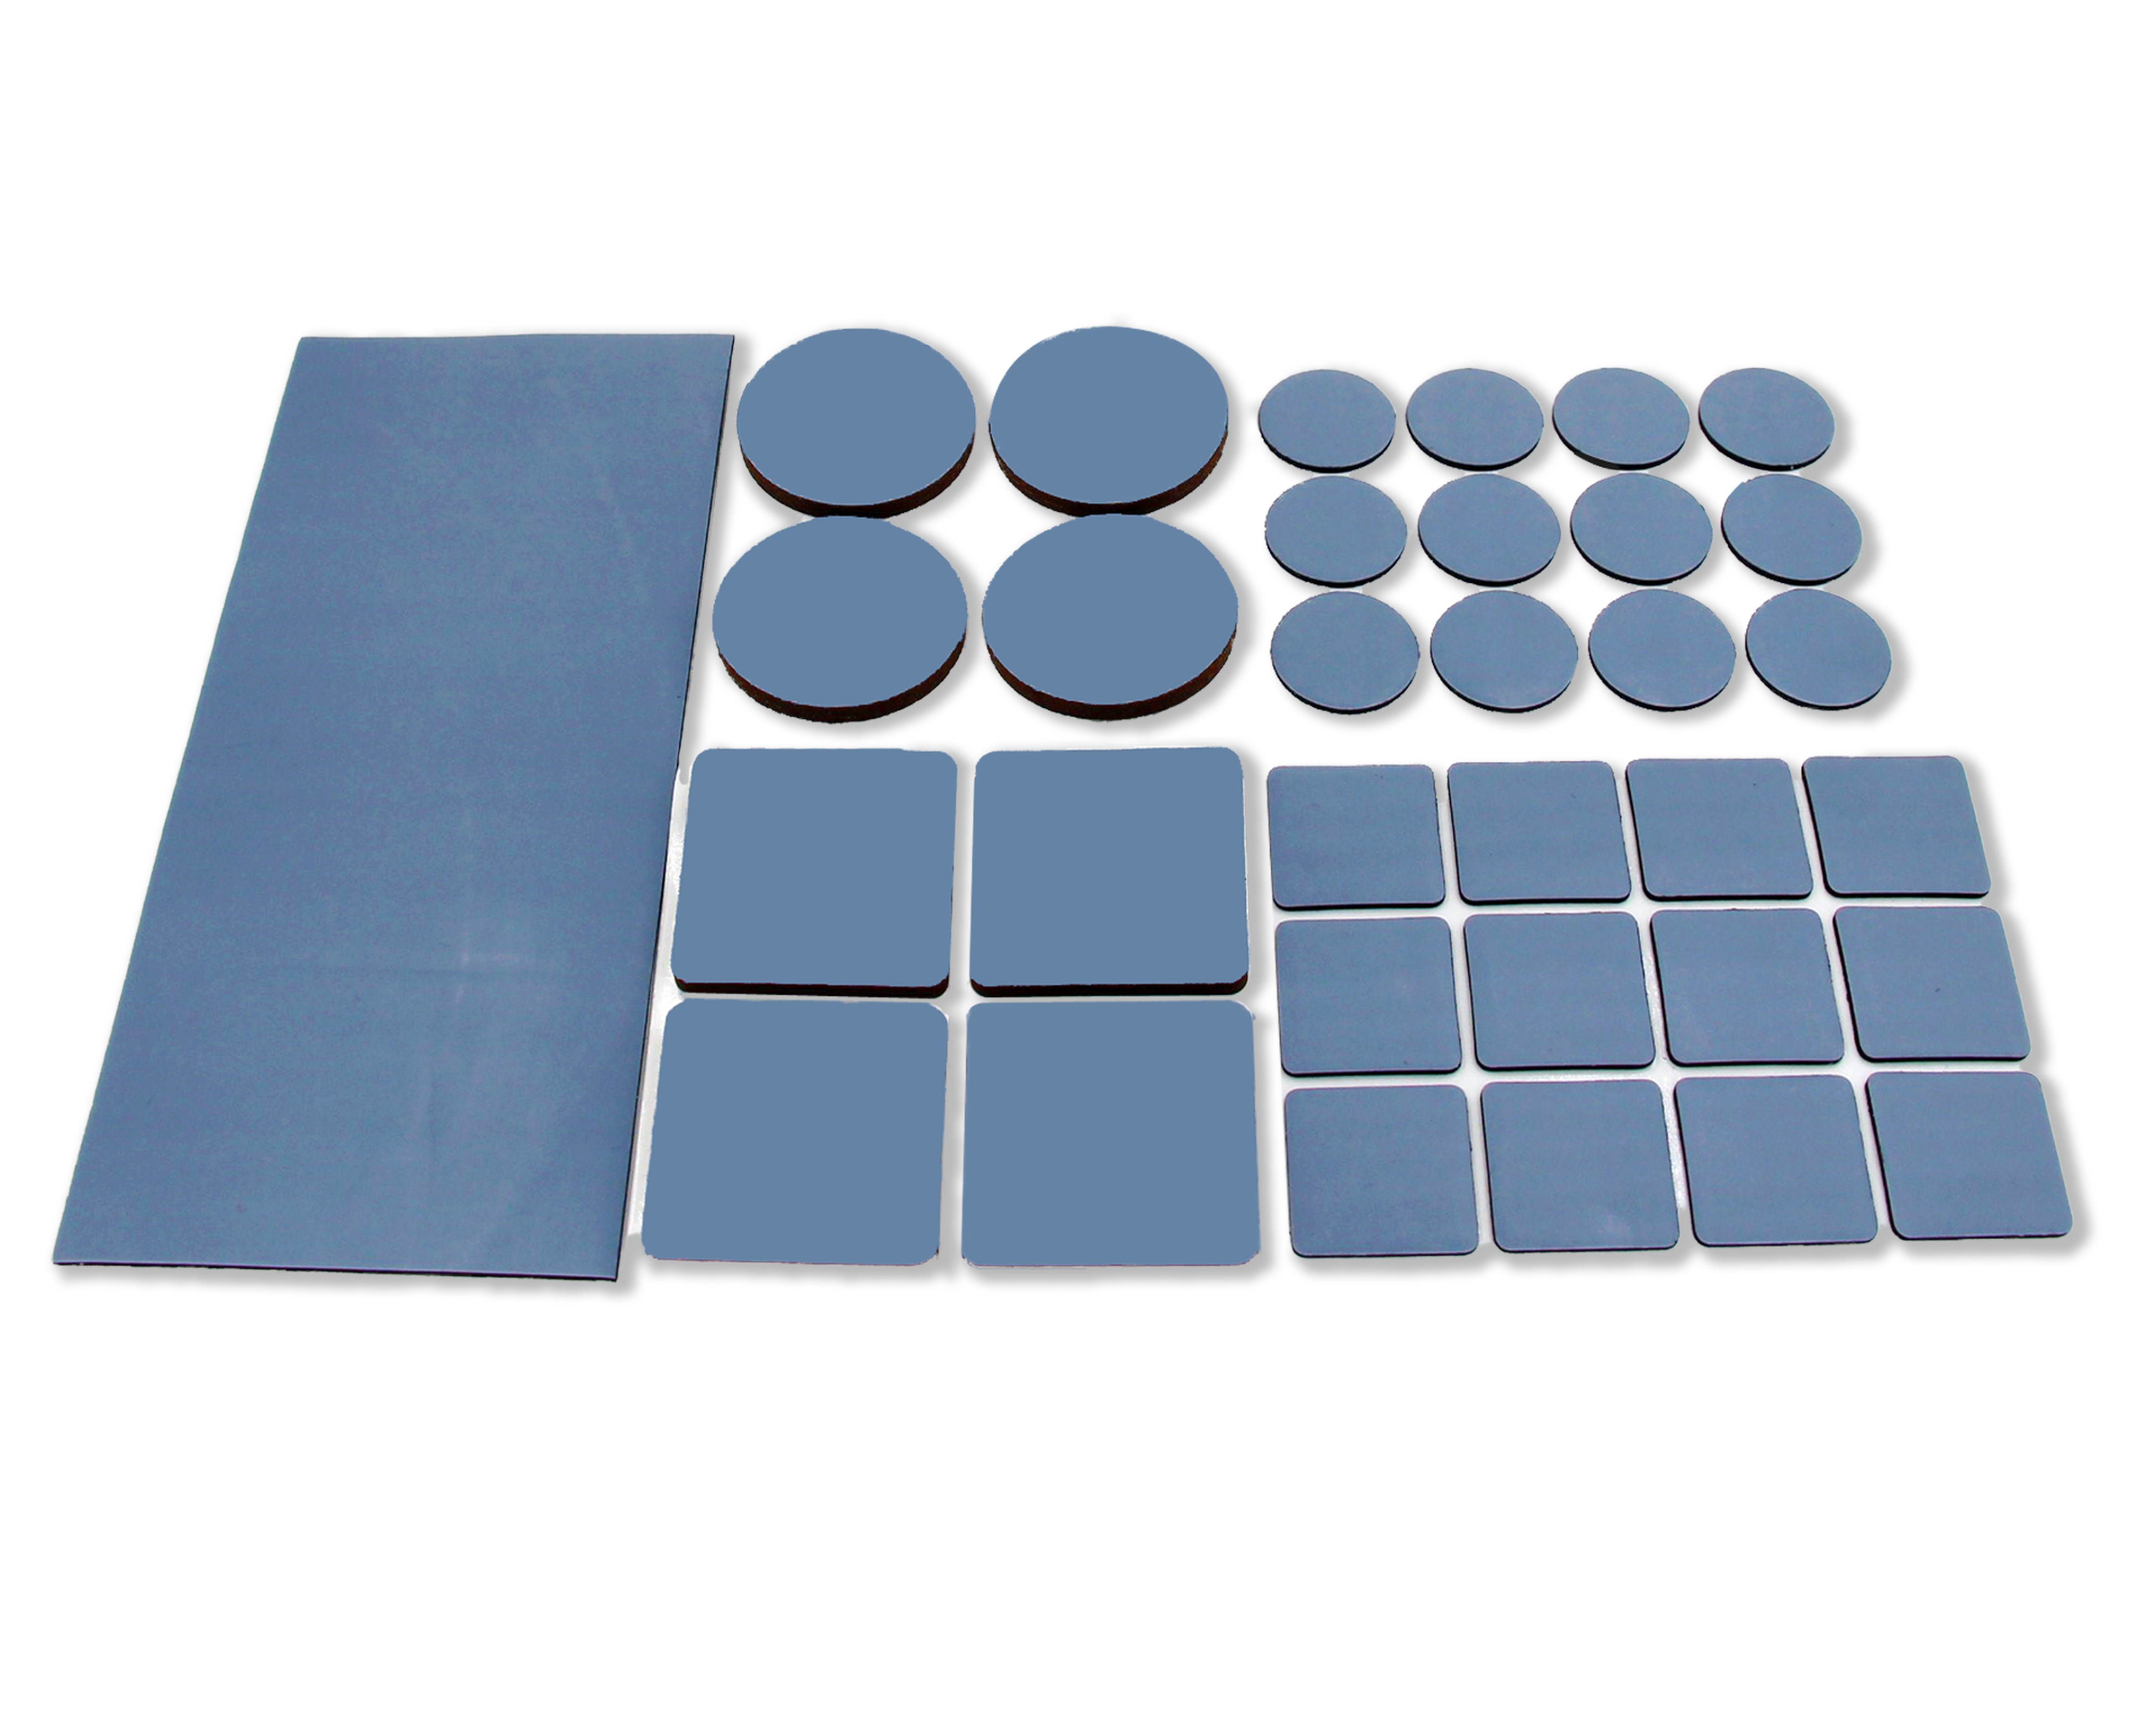 Self Adhesive Protective Wooden Flooring Protection Felt Protect Pads 24 Square